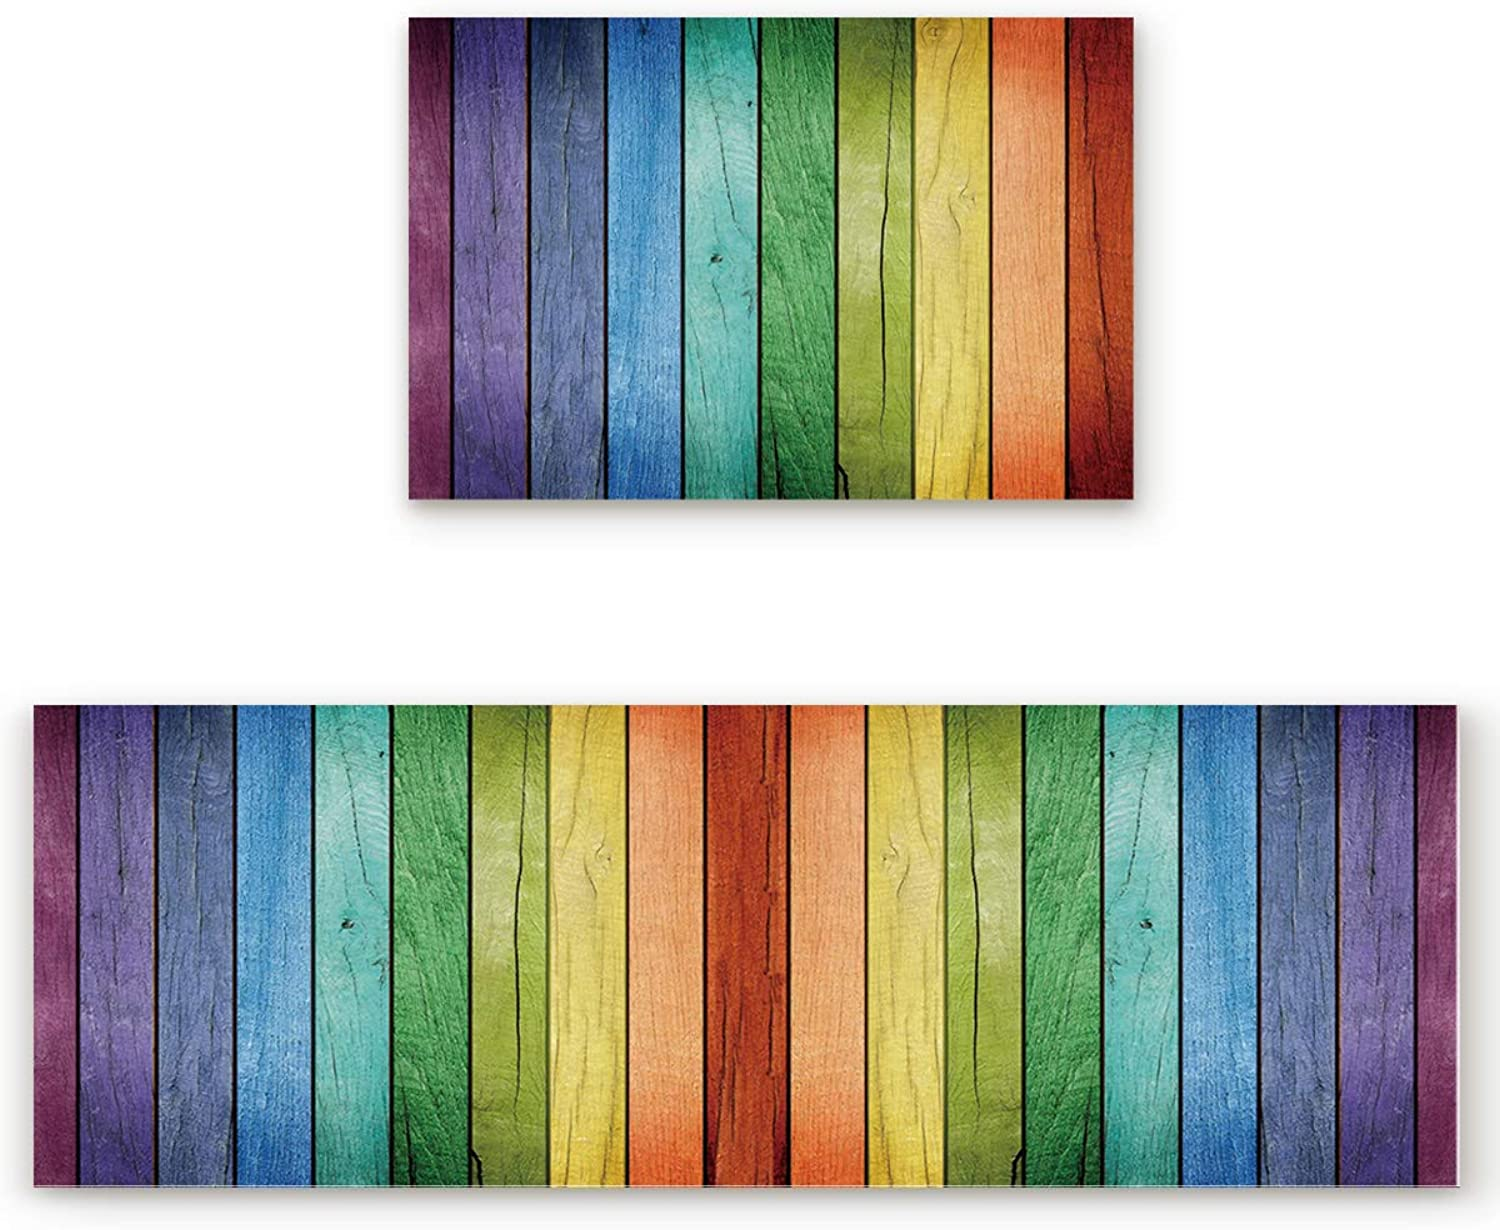 Savannan 2 Piece Non-Slip Kitchen Bathroom Entrance Mat Absorbent Durable Floor Doormat Runner Rug Set - Old Wood Rustic Oak Plank Background with greenical Striped Vivid Woods Farm Barn Image